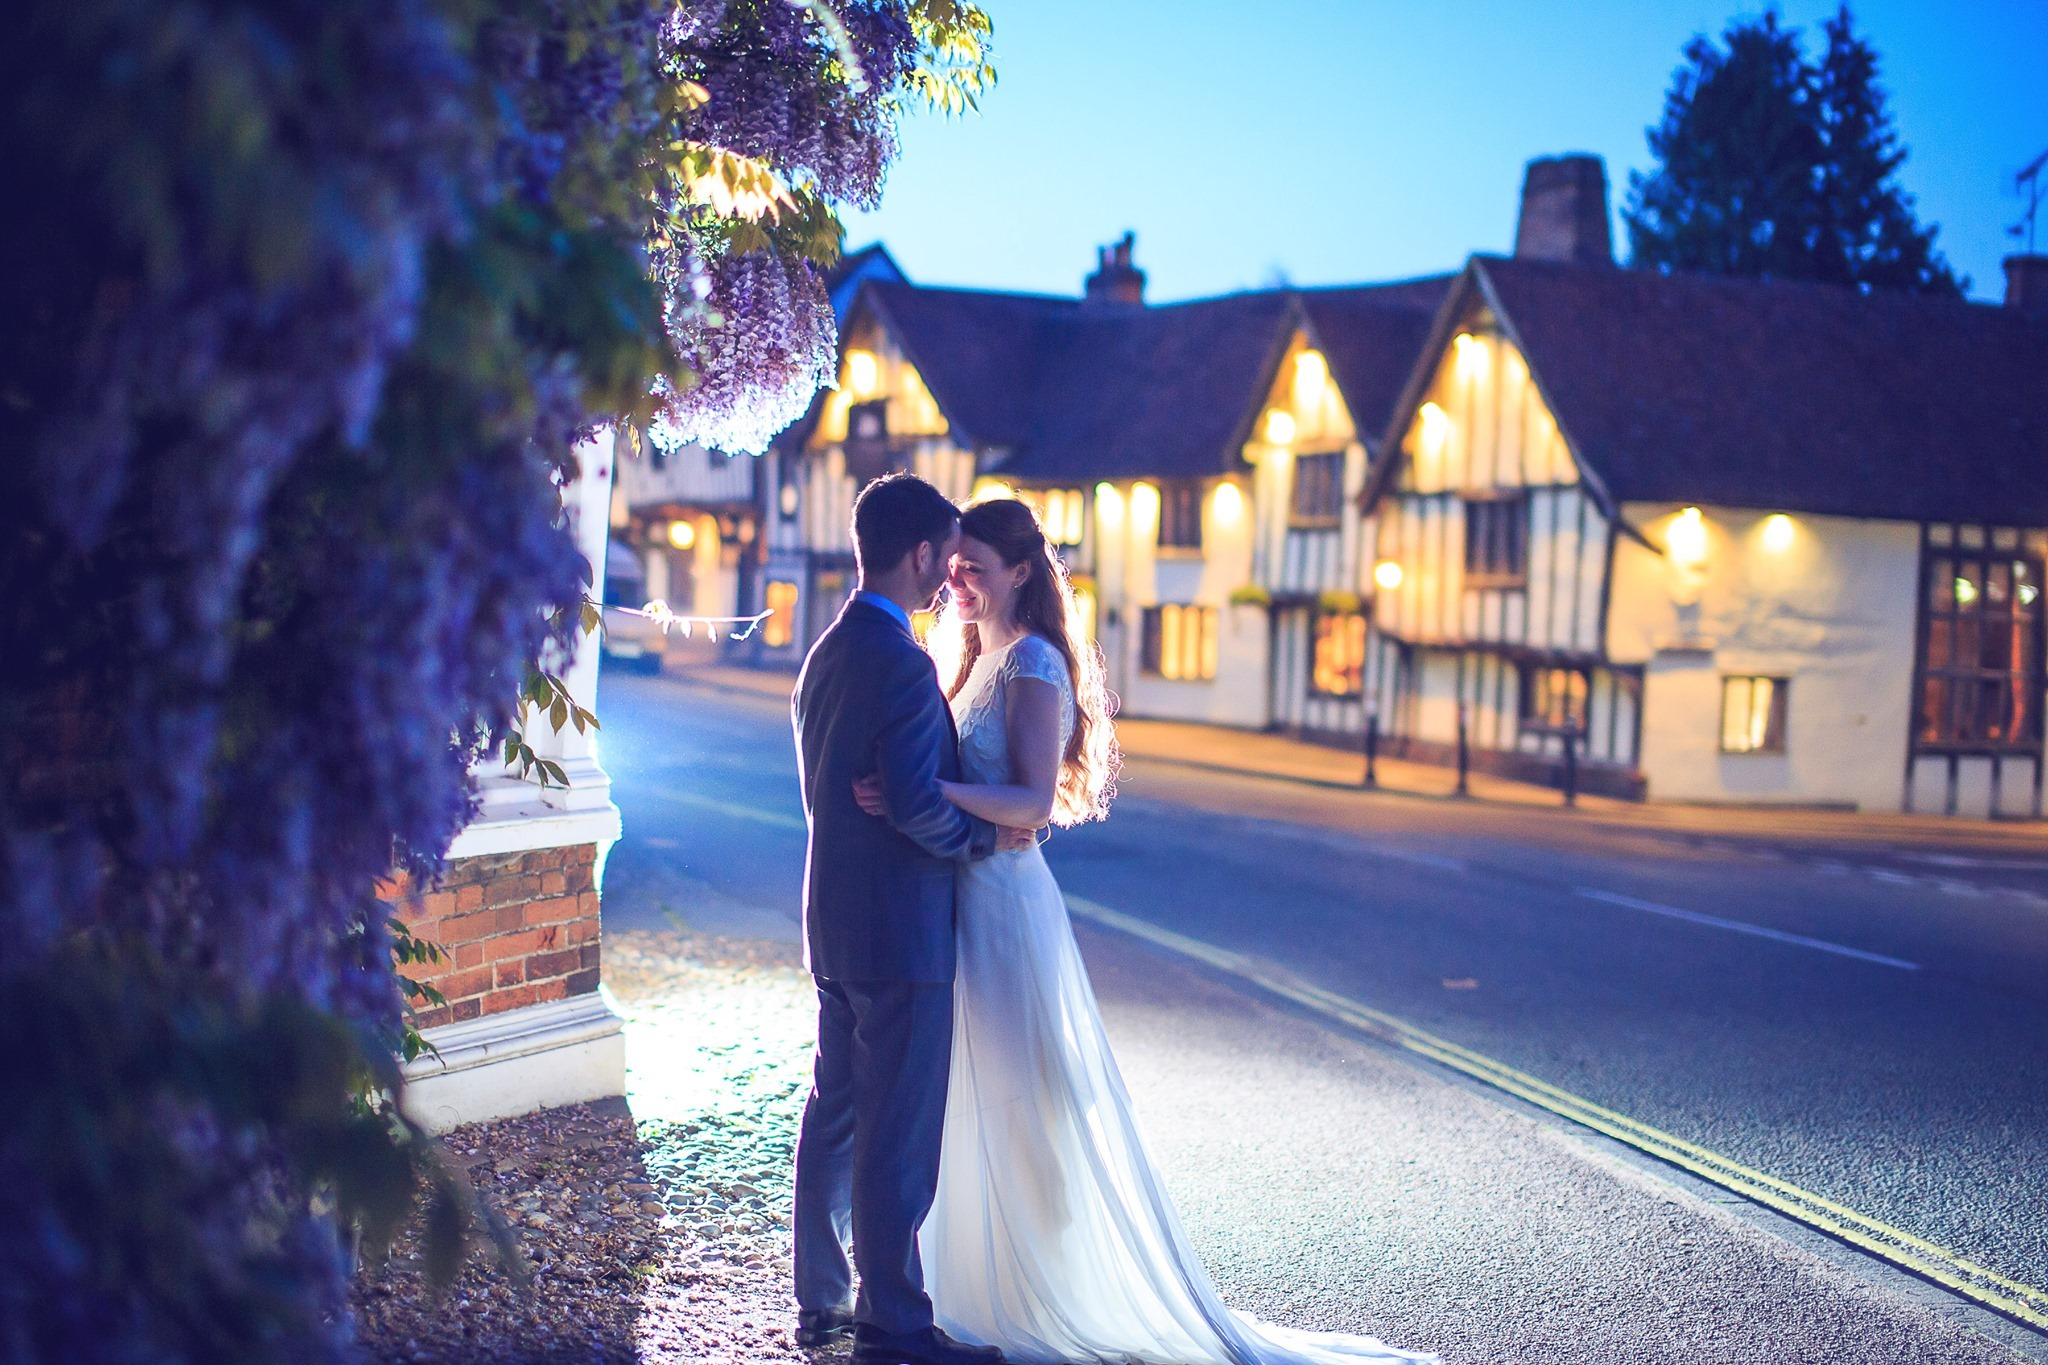 Say 'I Do' in Bury St Edmunds & Beyond